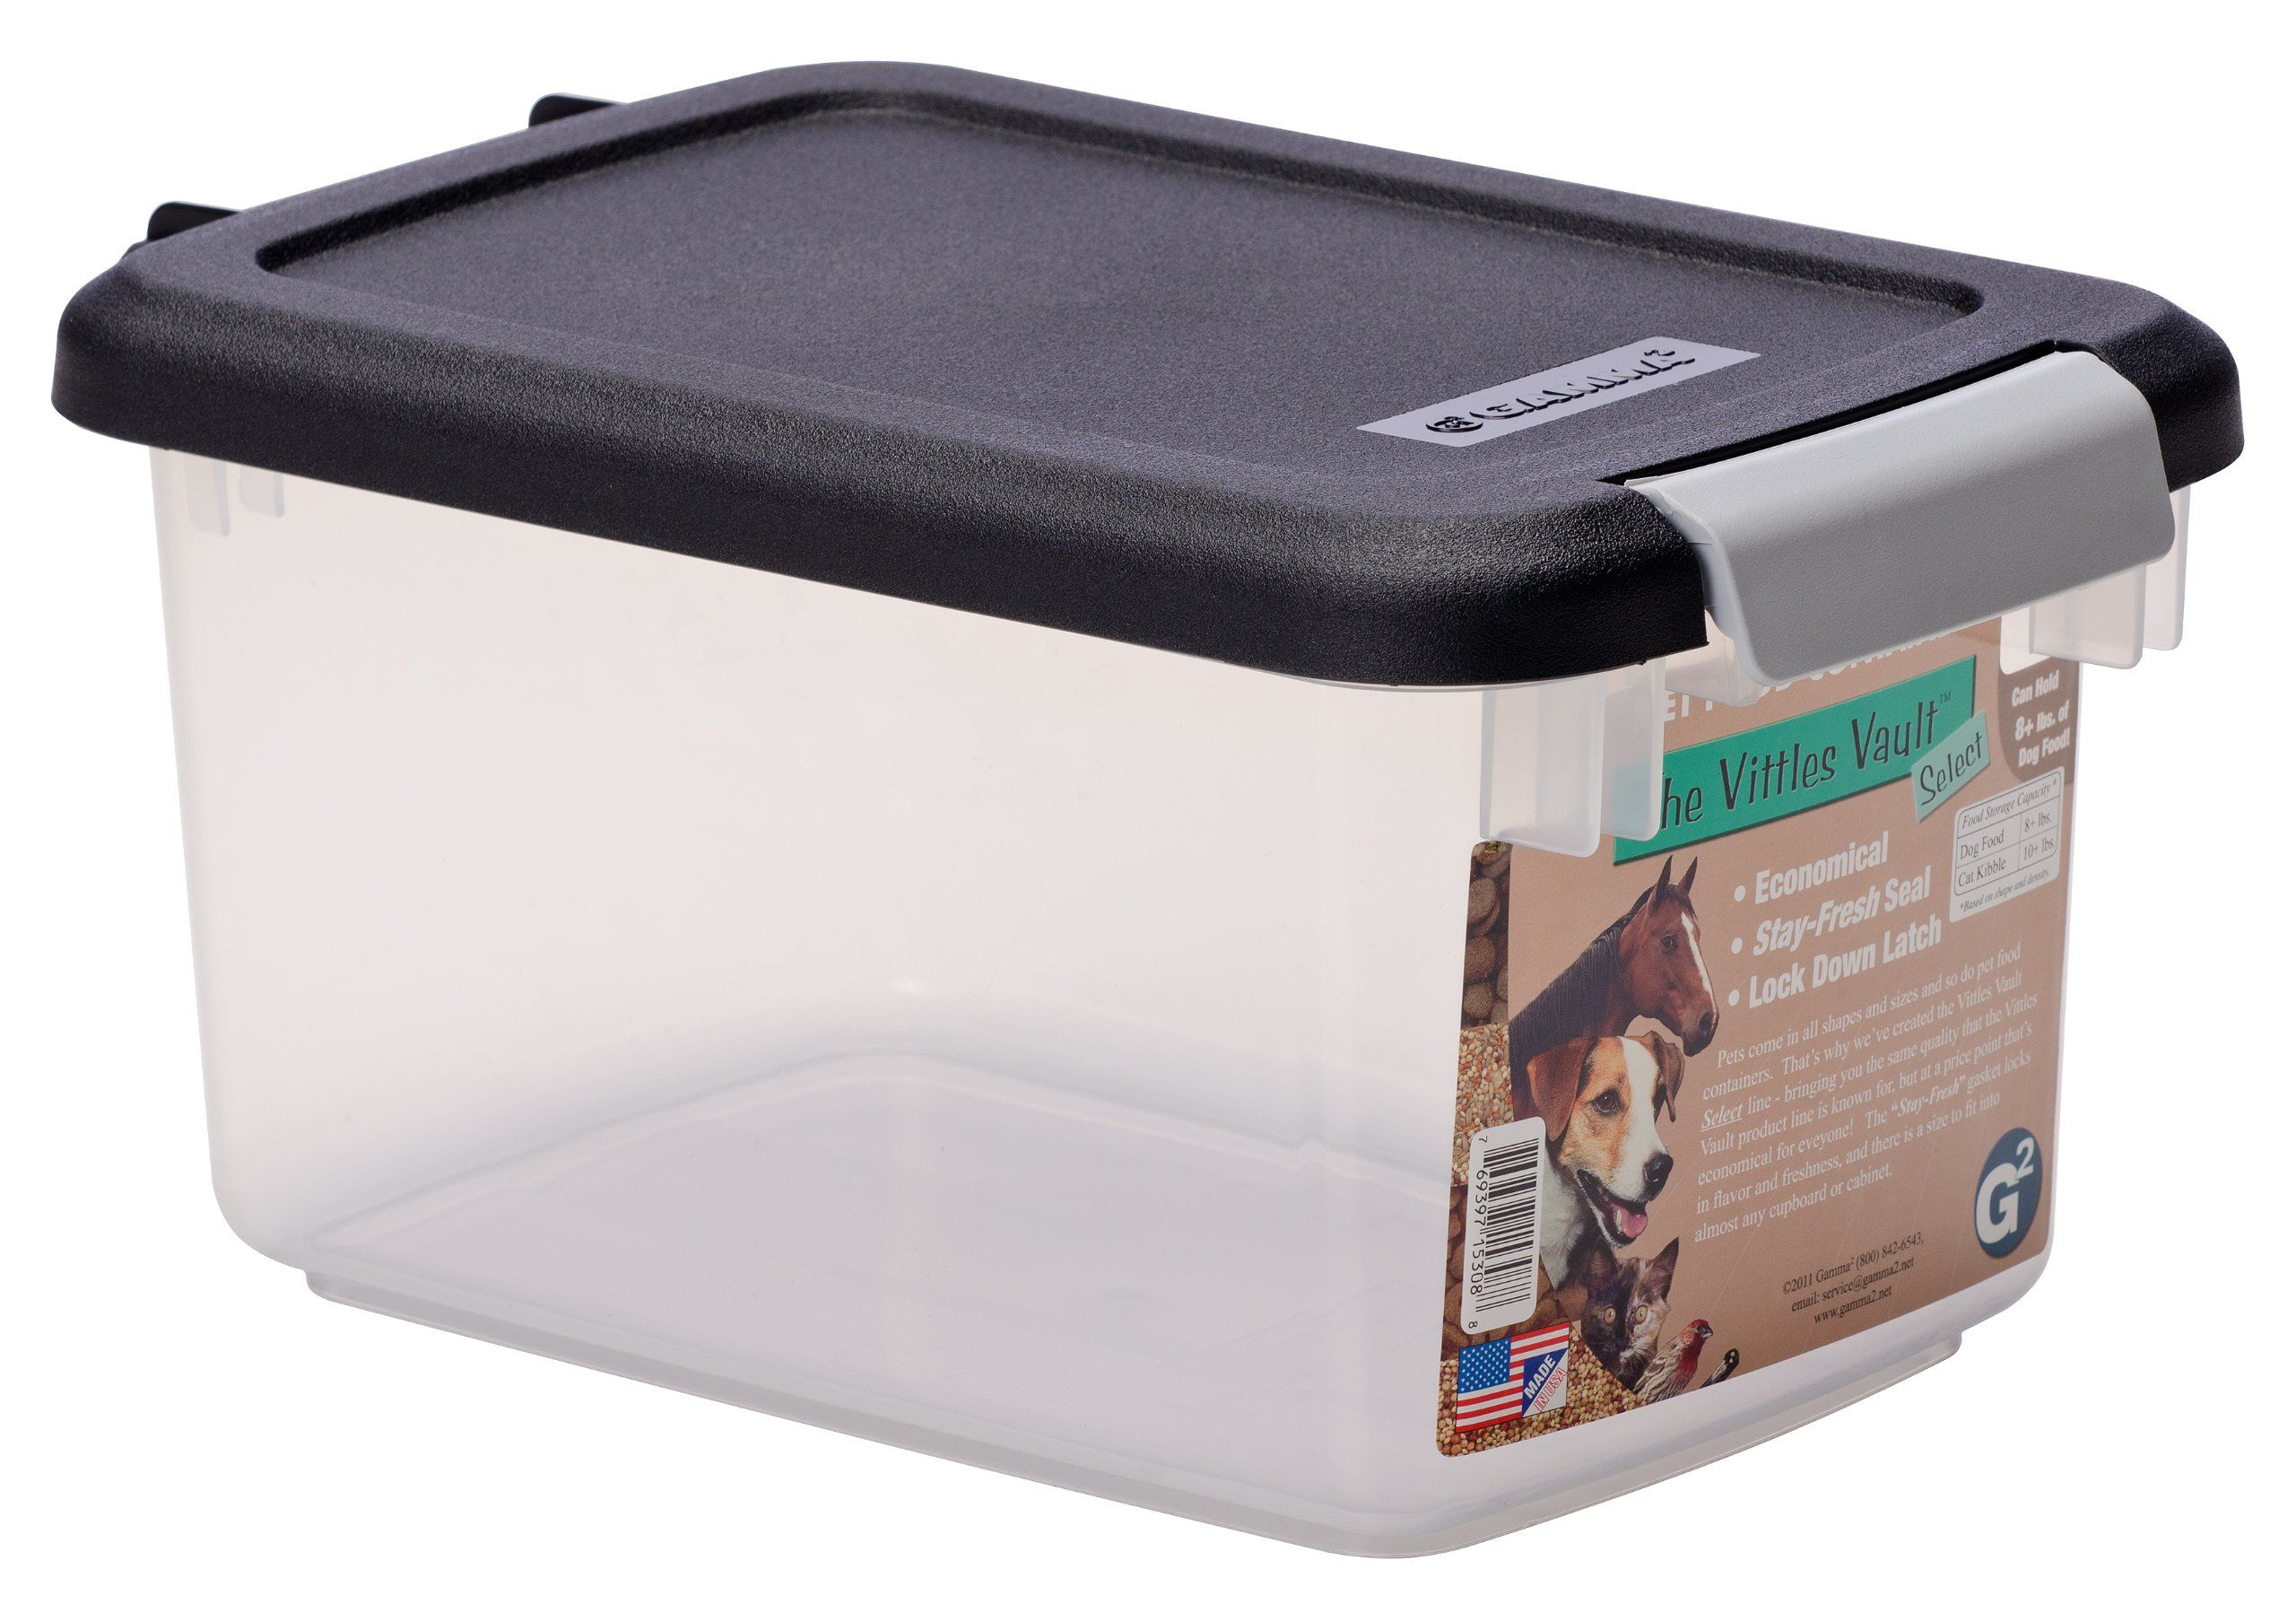 Gamma2 vittles vault 8 lb pet food container check out